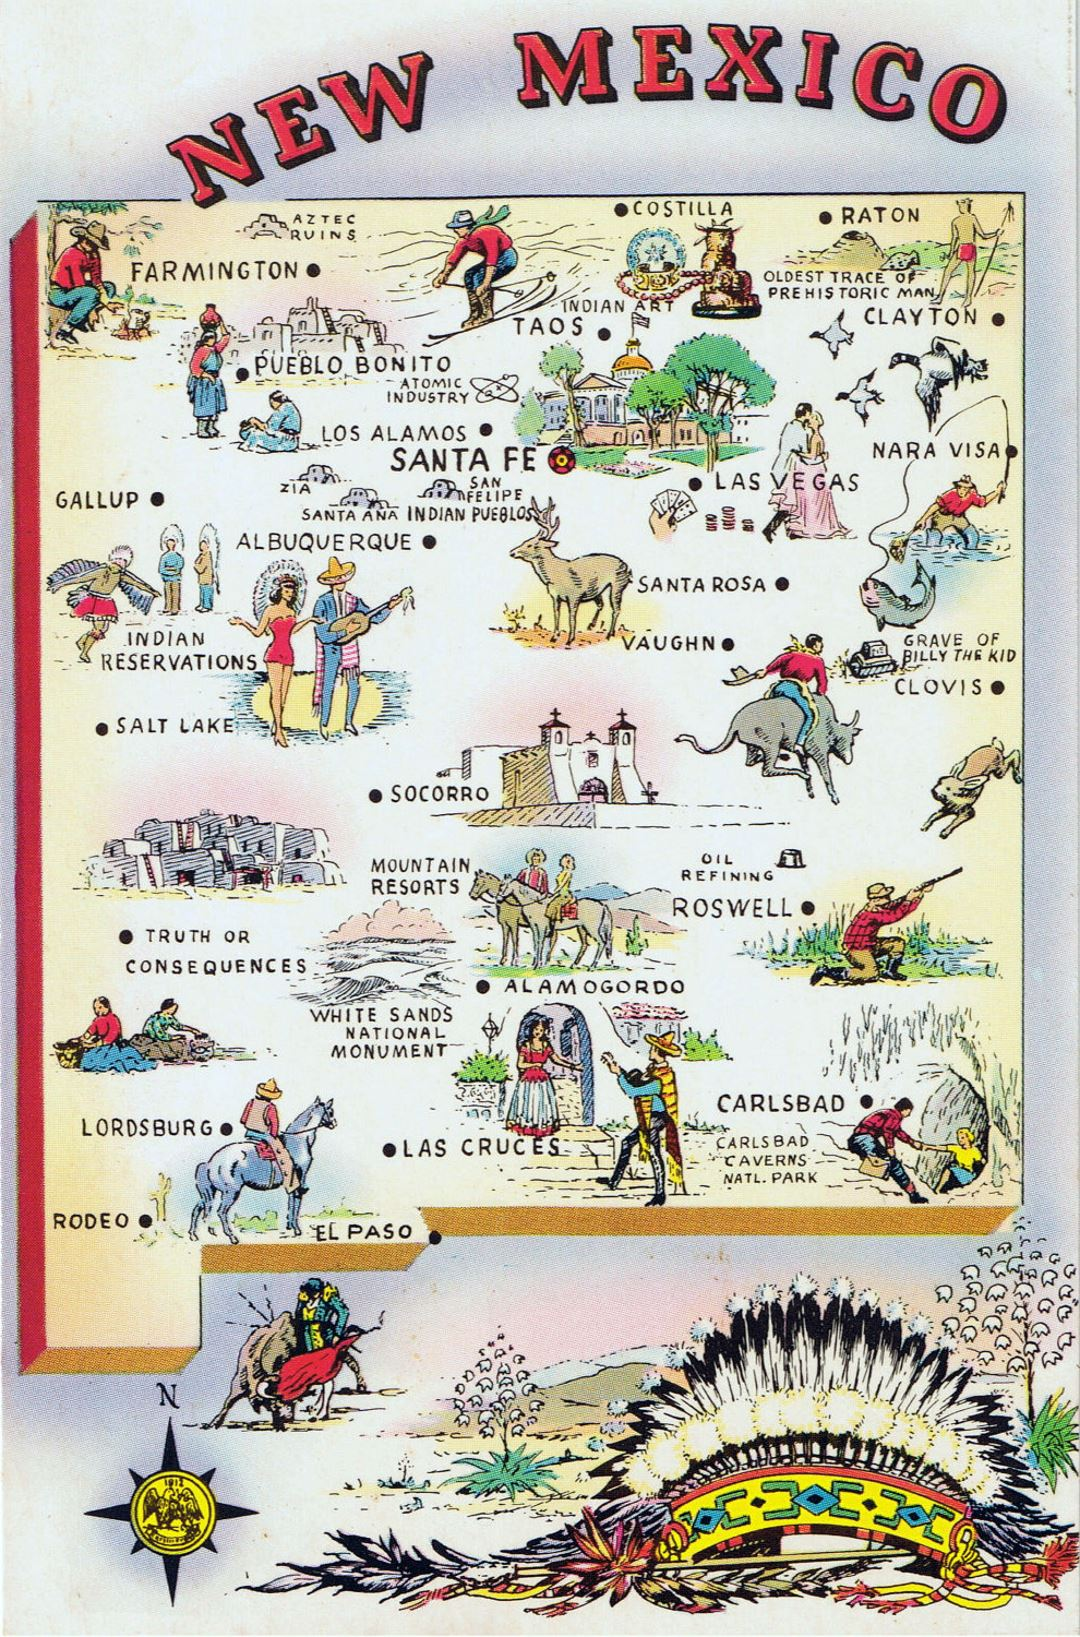 Detailed tourist illustrated map of New Mexico state | New Mexico ...